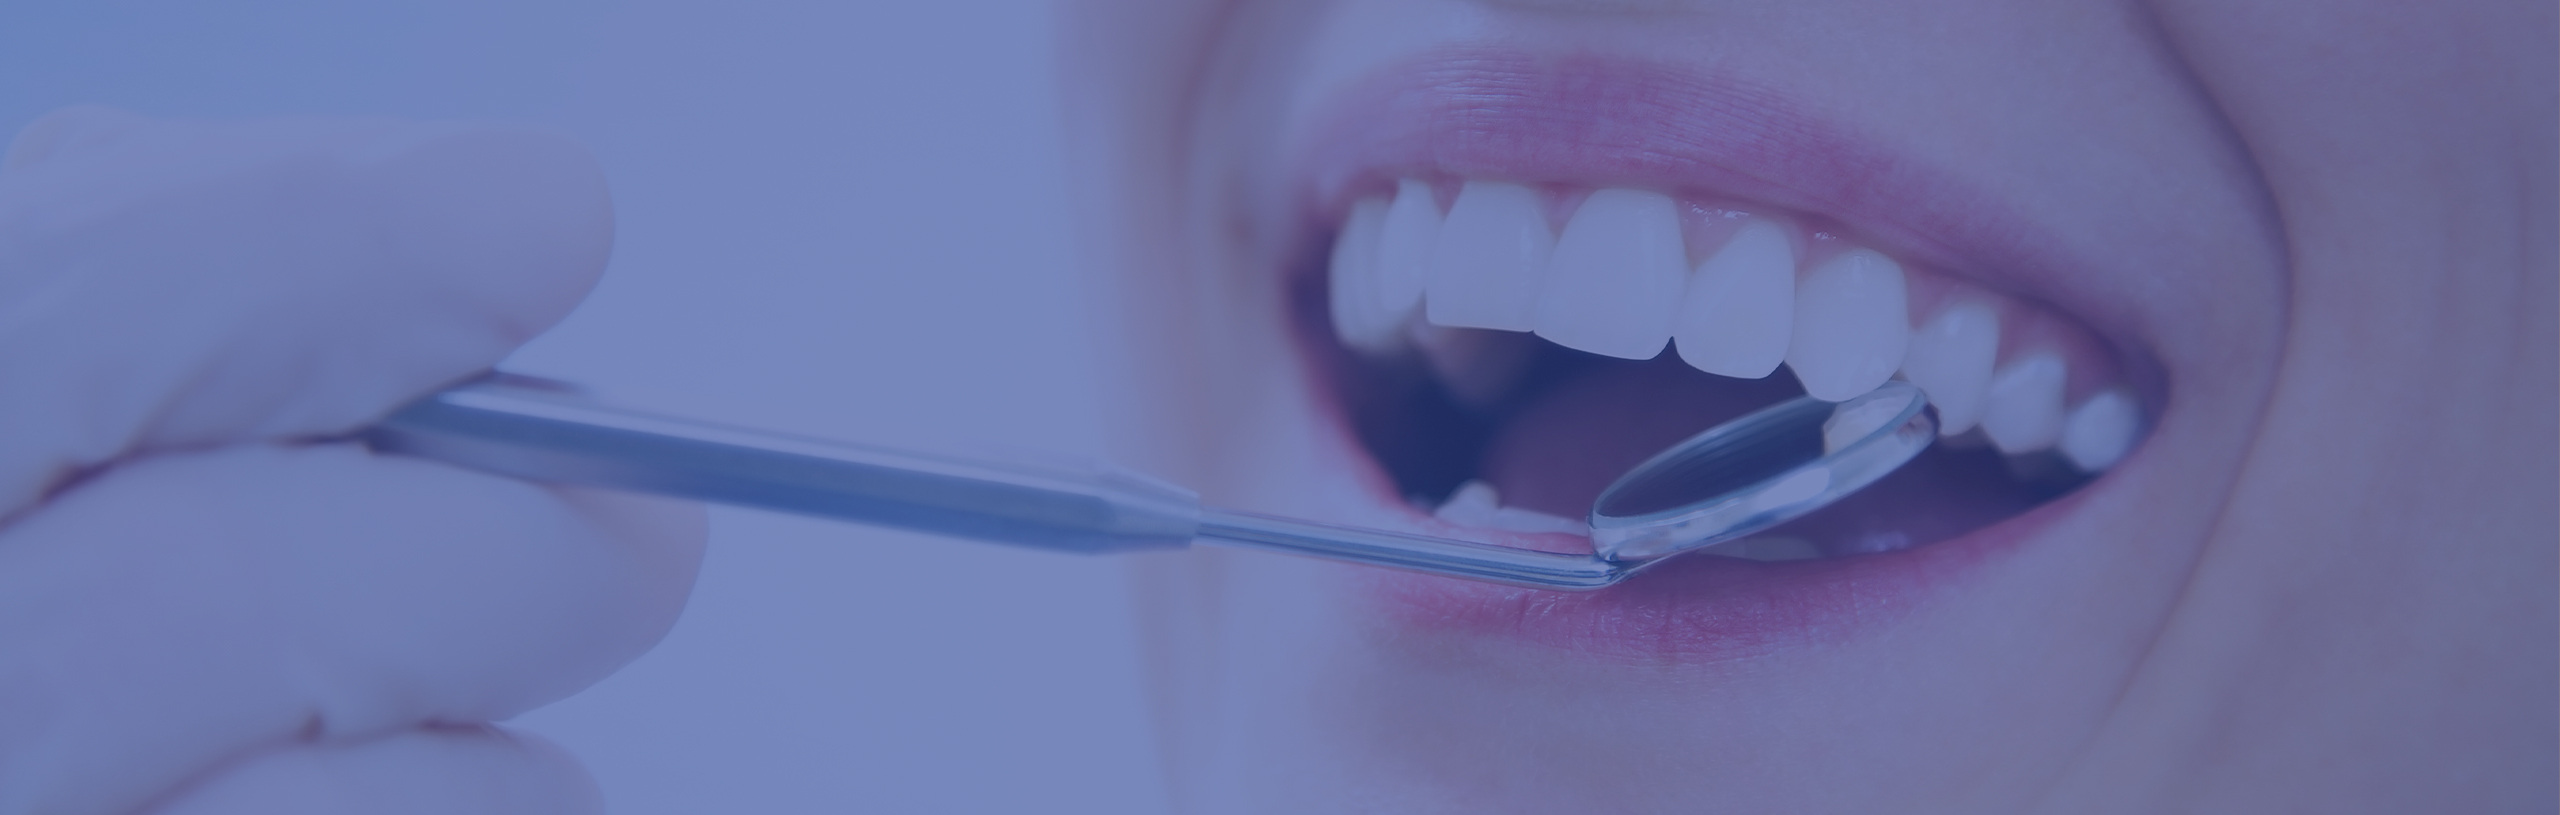 cosmetic dentistry header image